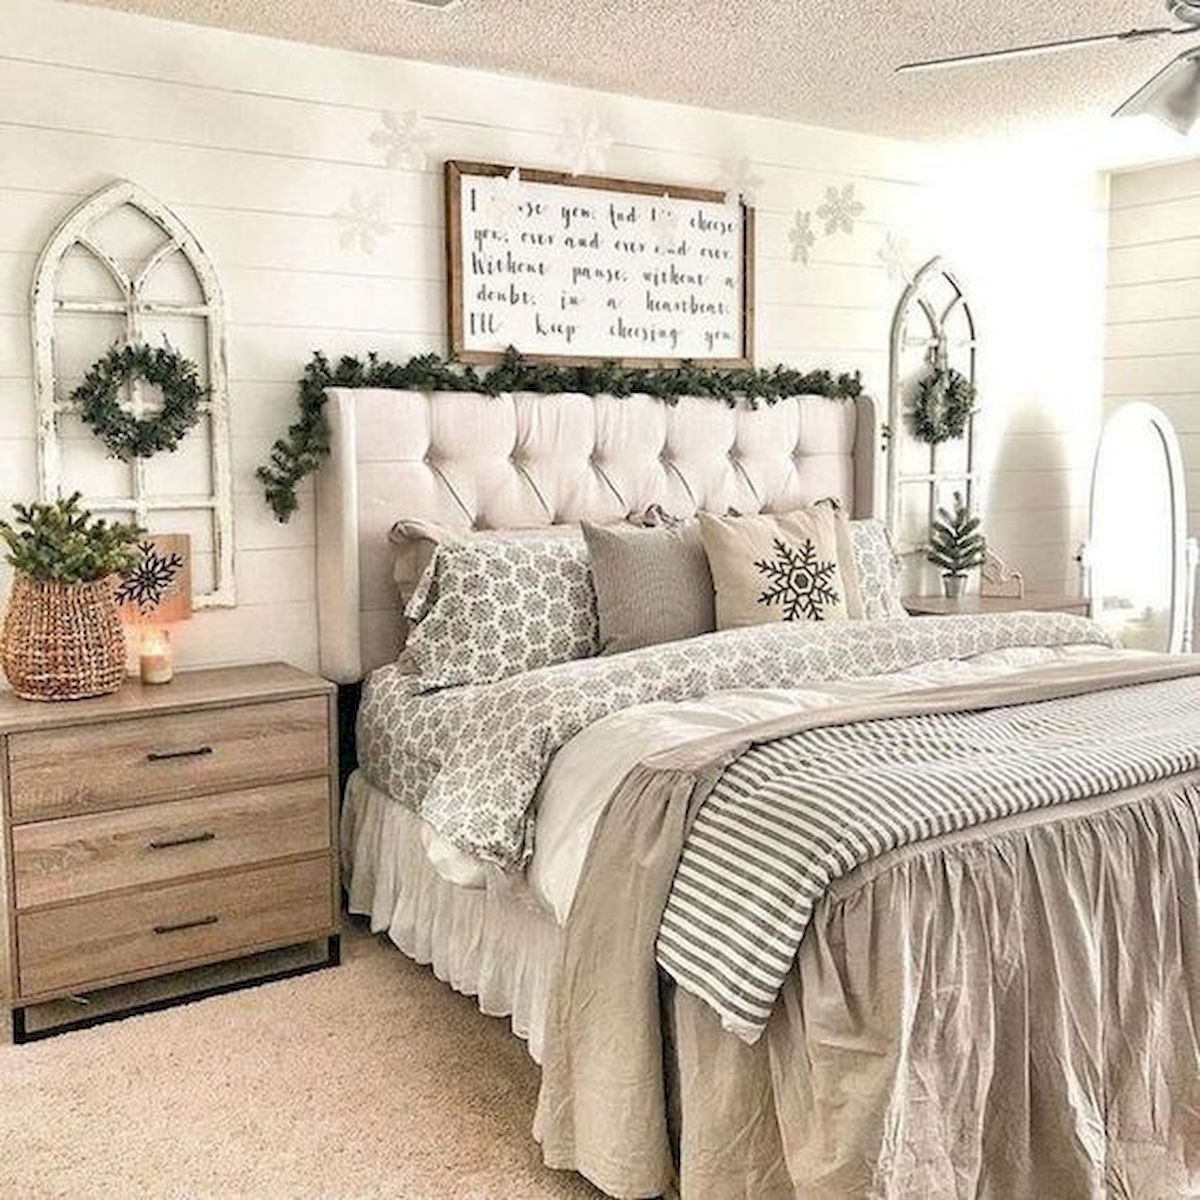 53 Farmhouse Wall Decor Ideas for bedroom (49)